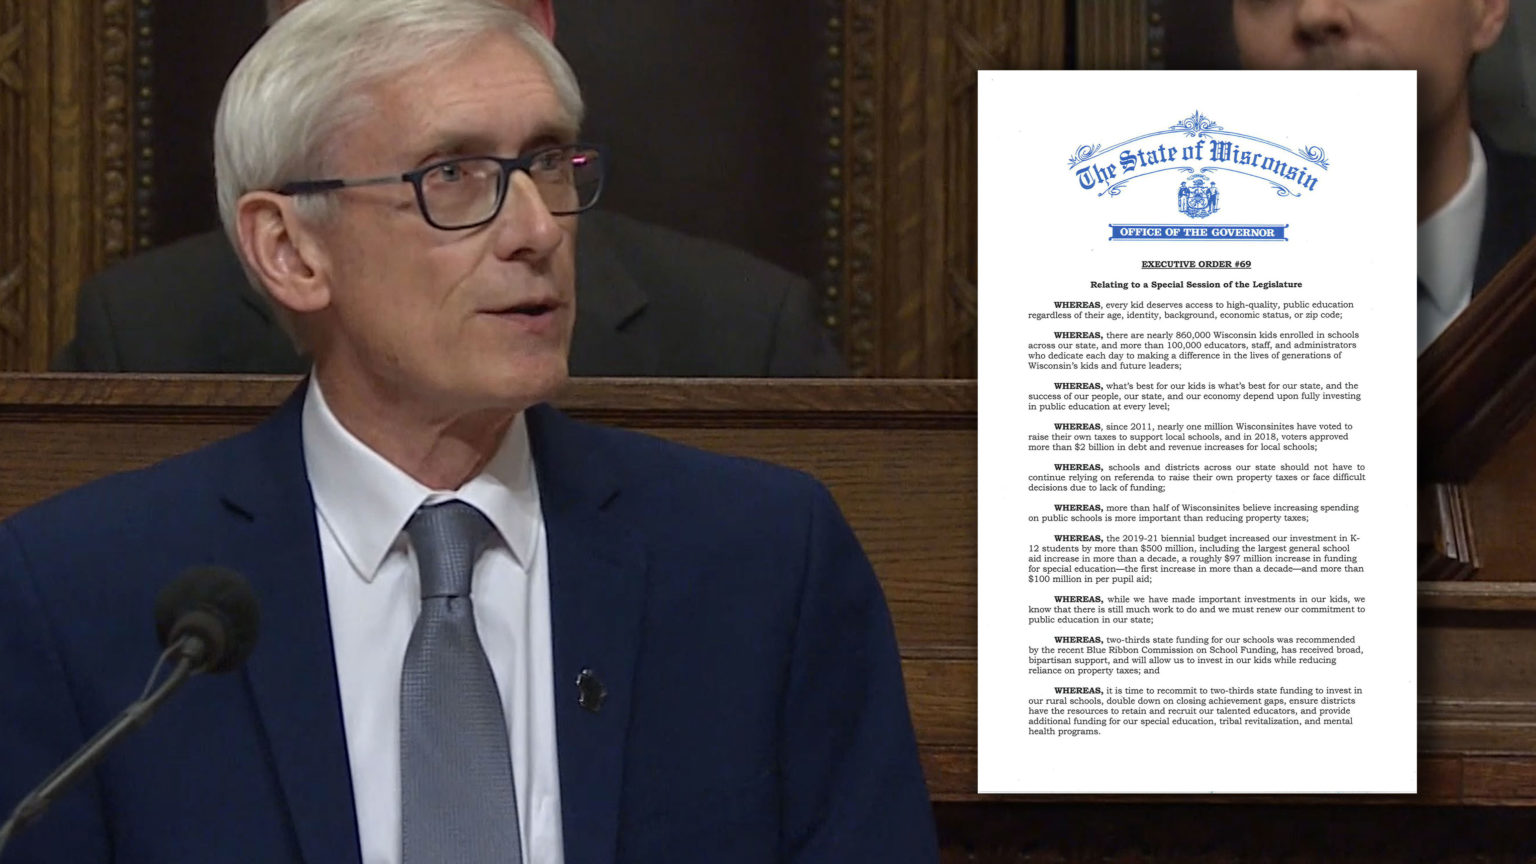 Evers Calls for Special Session, Return to Two-Thirds Funding